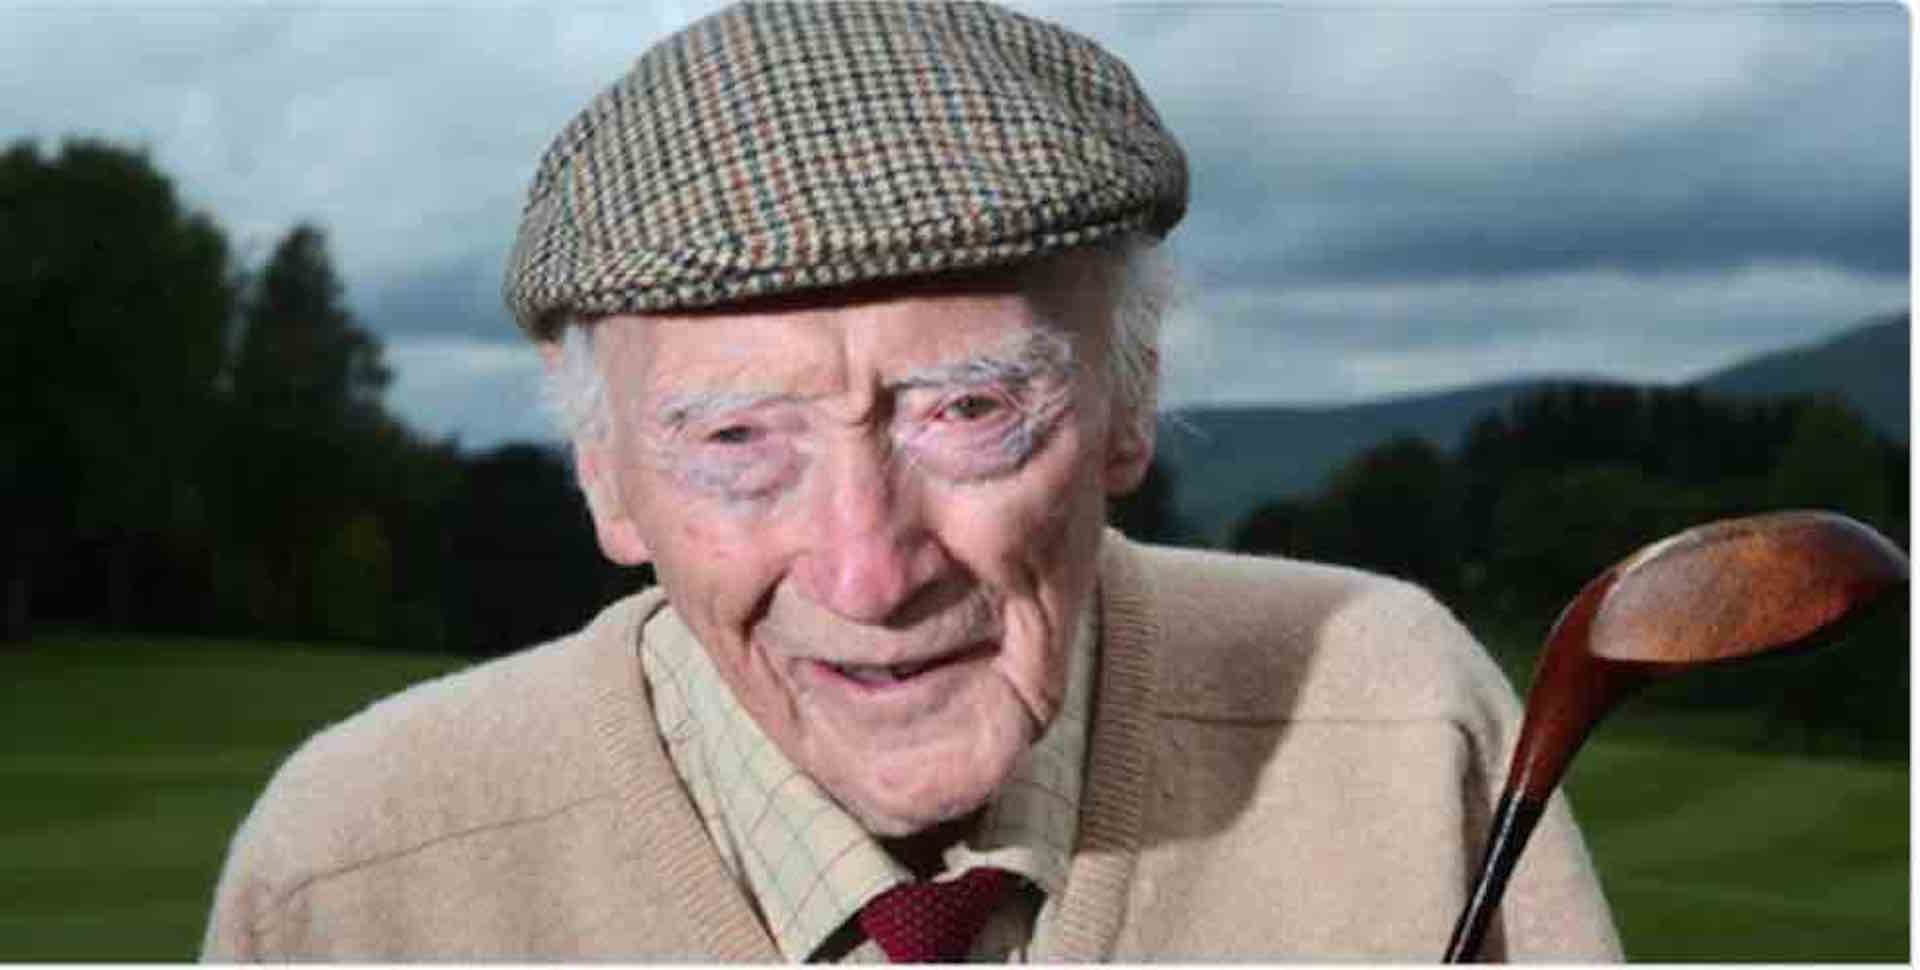 Hole in one for 91 year old golfer